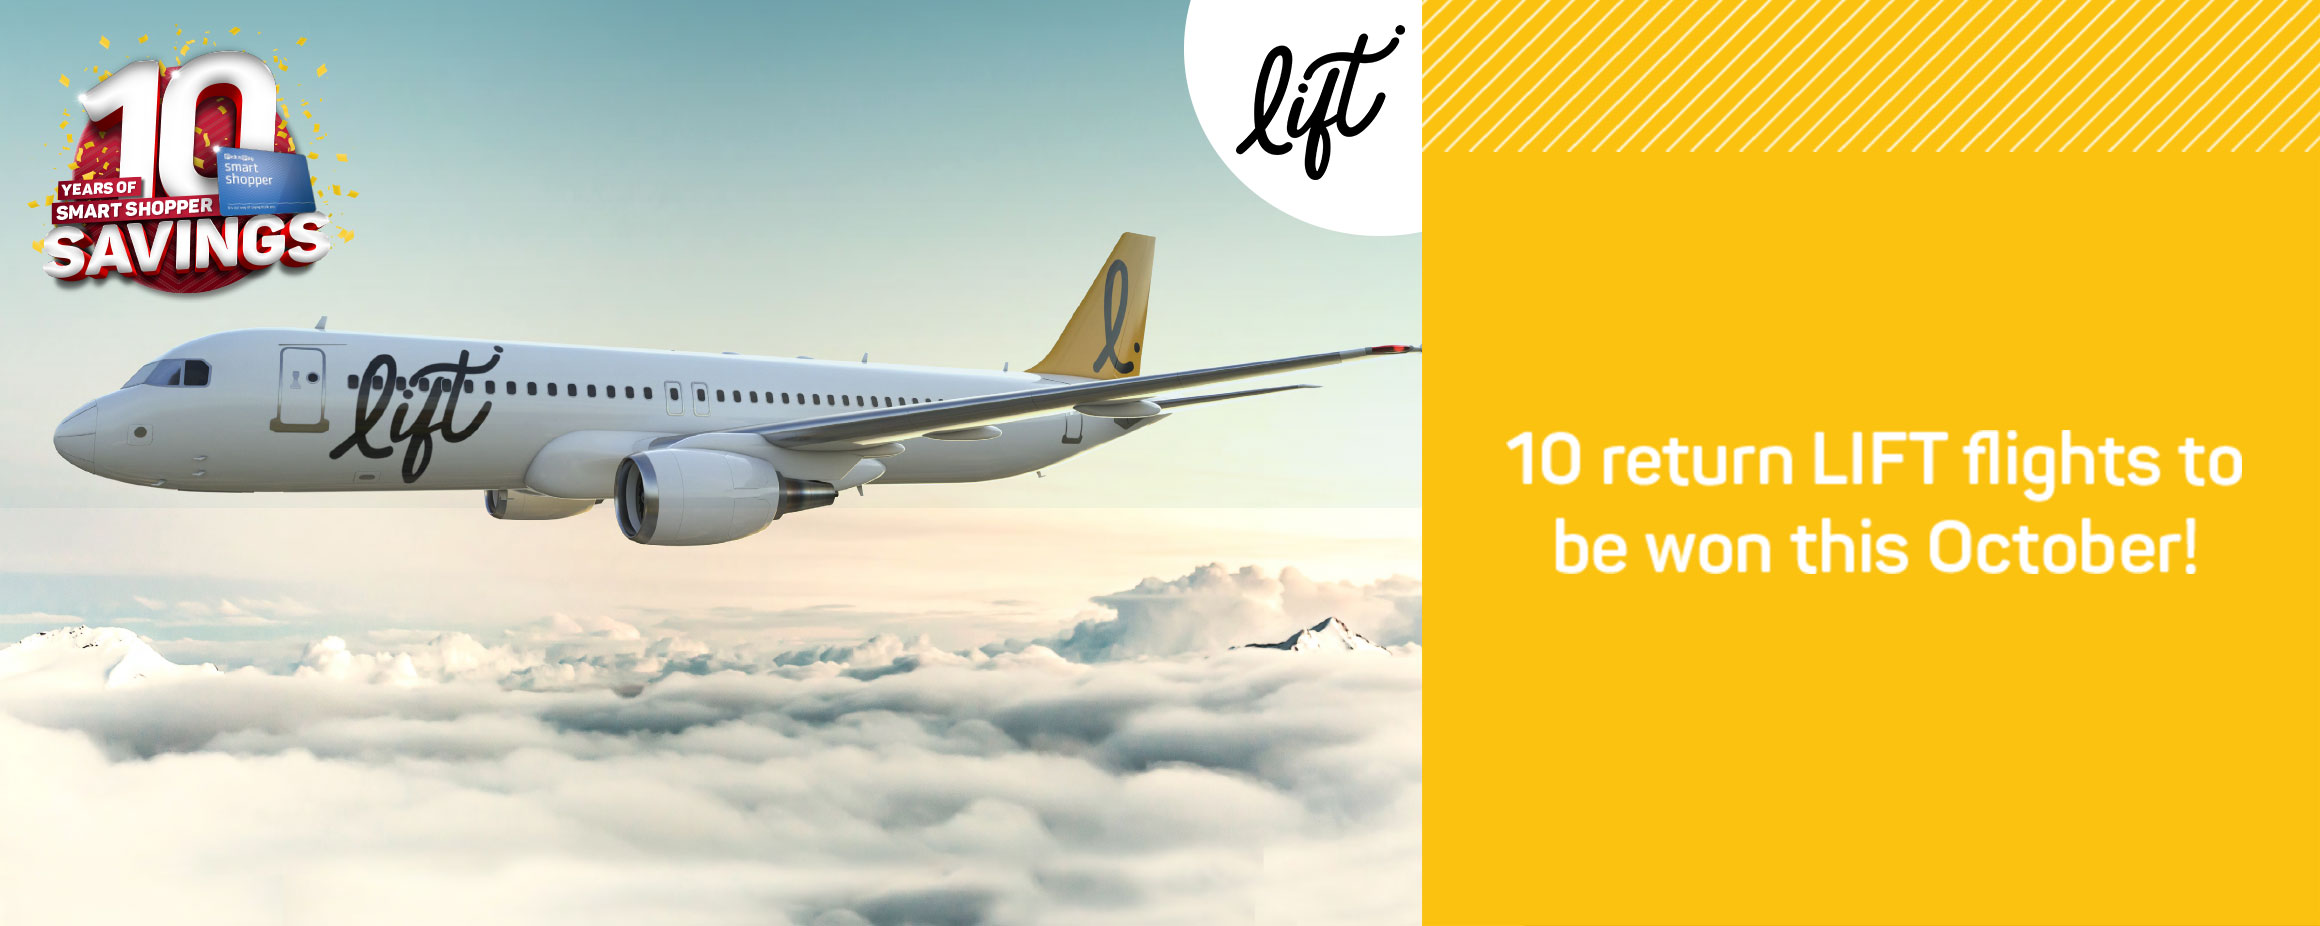 10 return LIFT flights to be won this October!